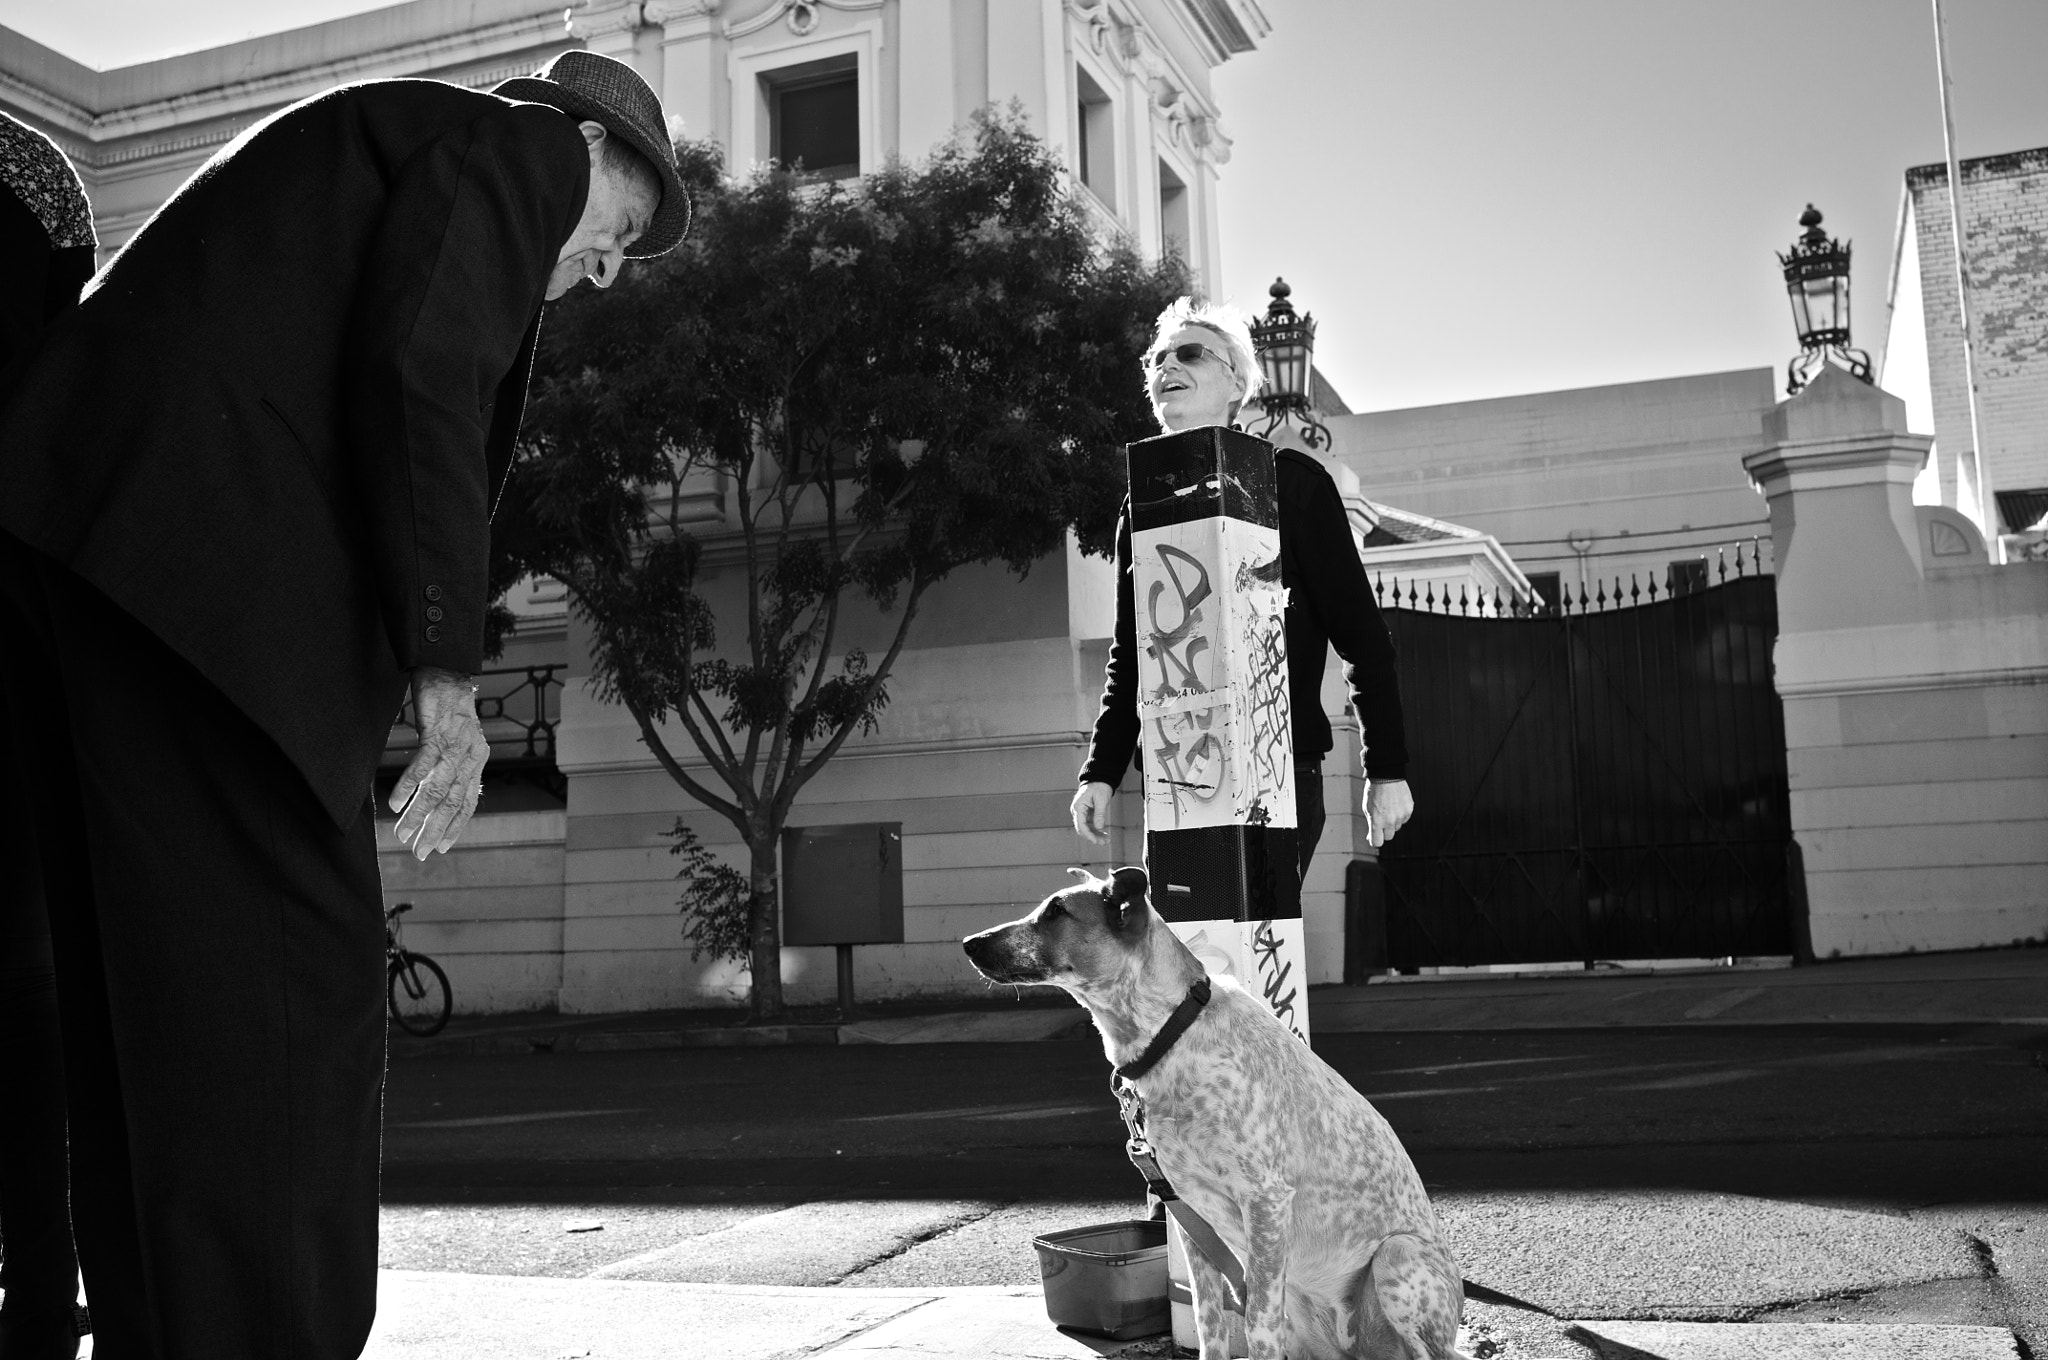 Photograph Man, Dog and a Man by Scott Kim on 500px